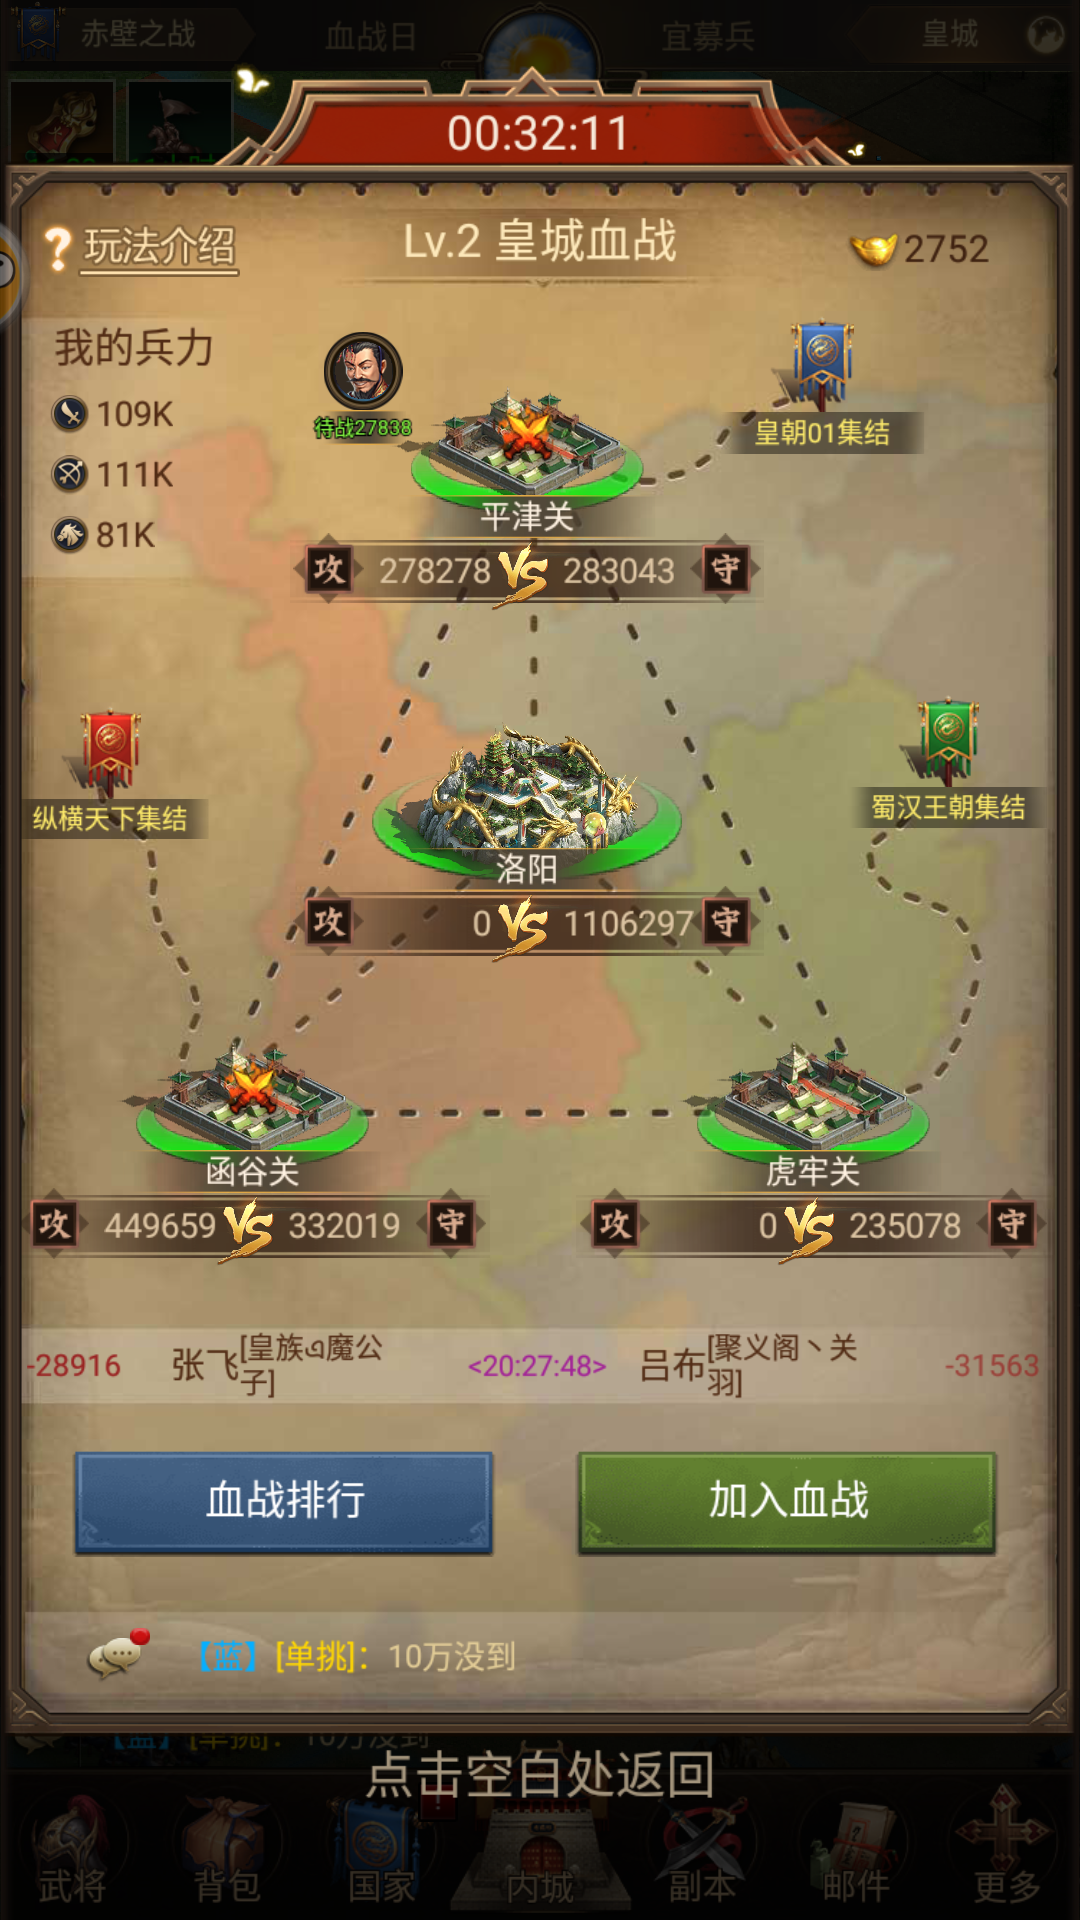 Screenshot_2019-08-02-20-27-50-907_com.juedigame.sgdjl.shoumeng.png